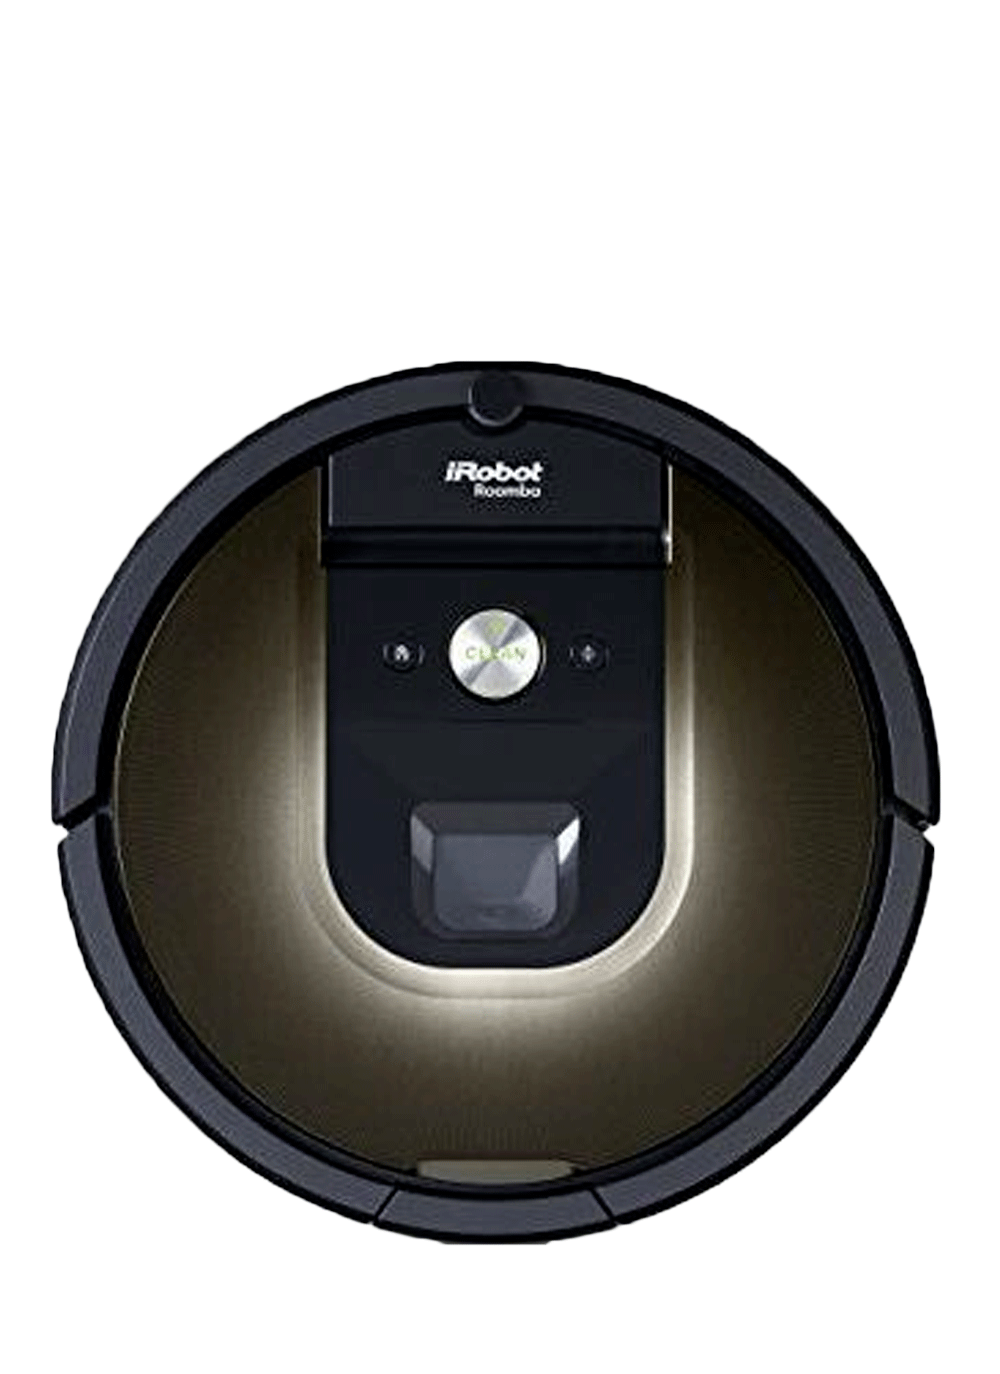 5 Best Robot Vacuums For 2019 Top Tested Robot Vacuum